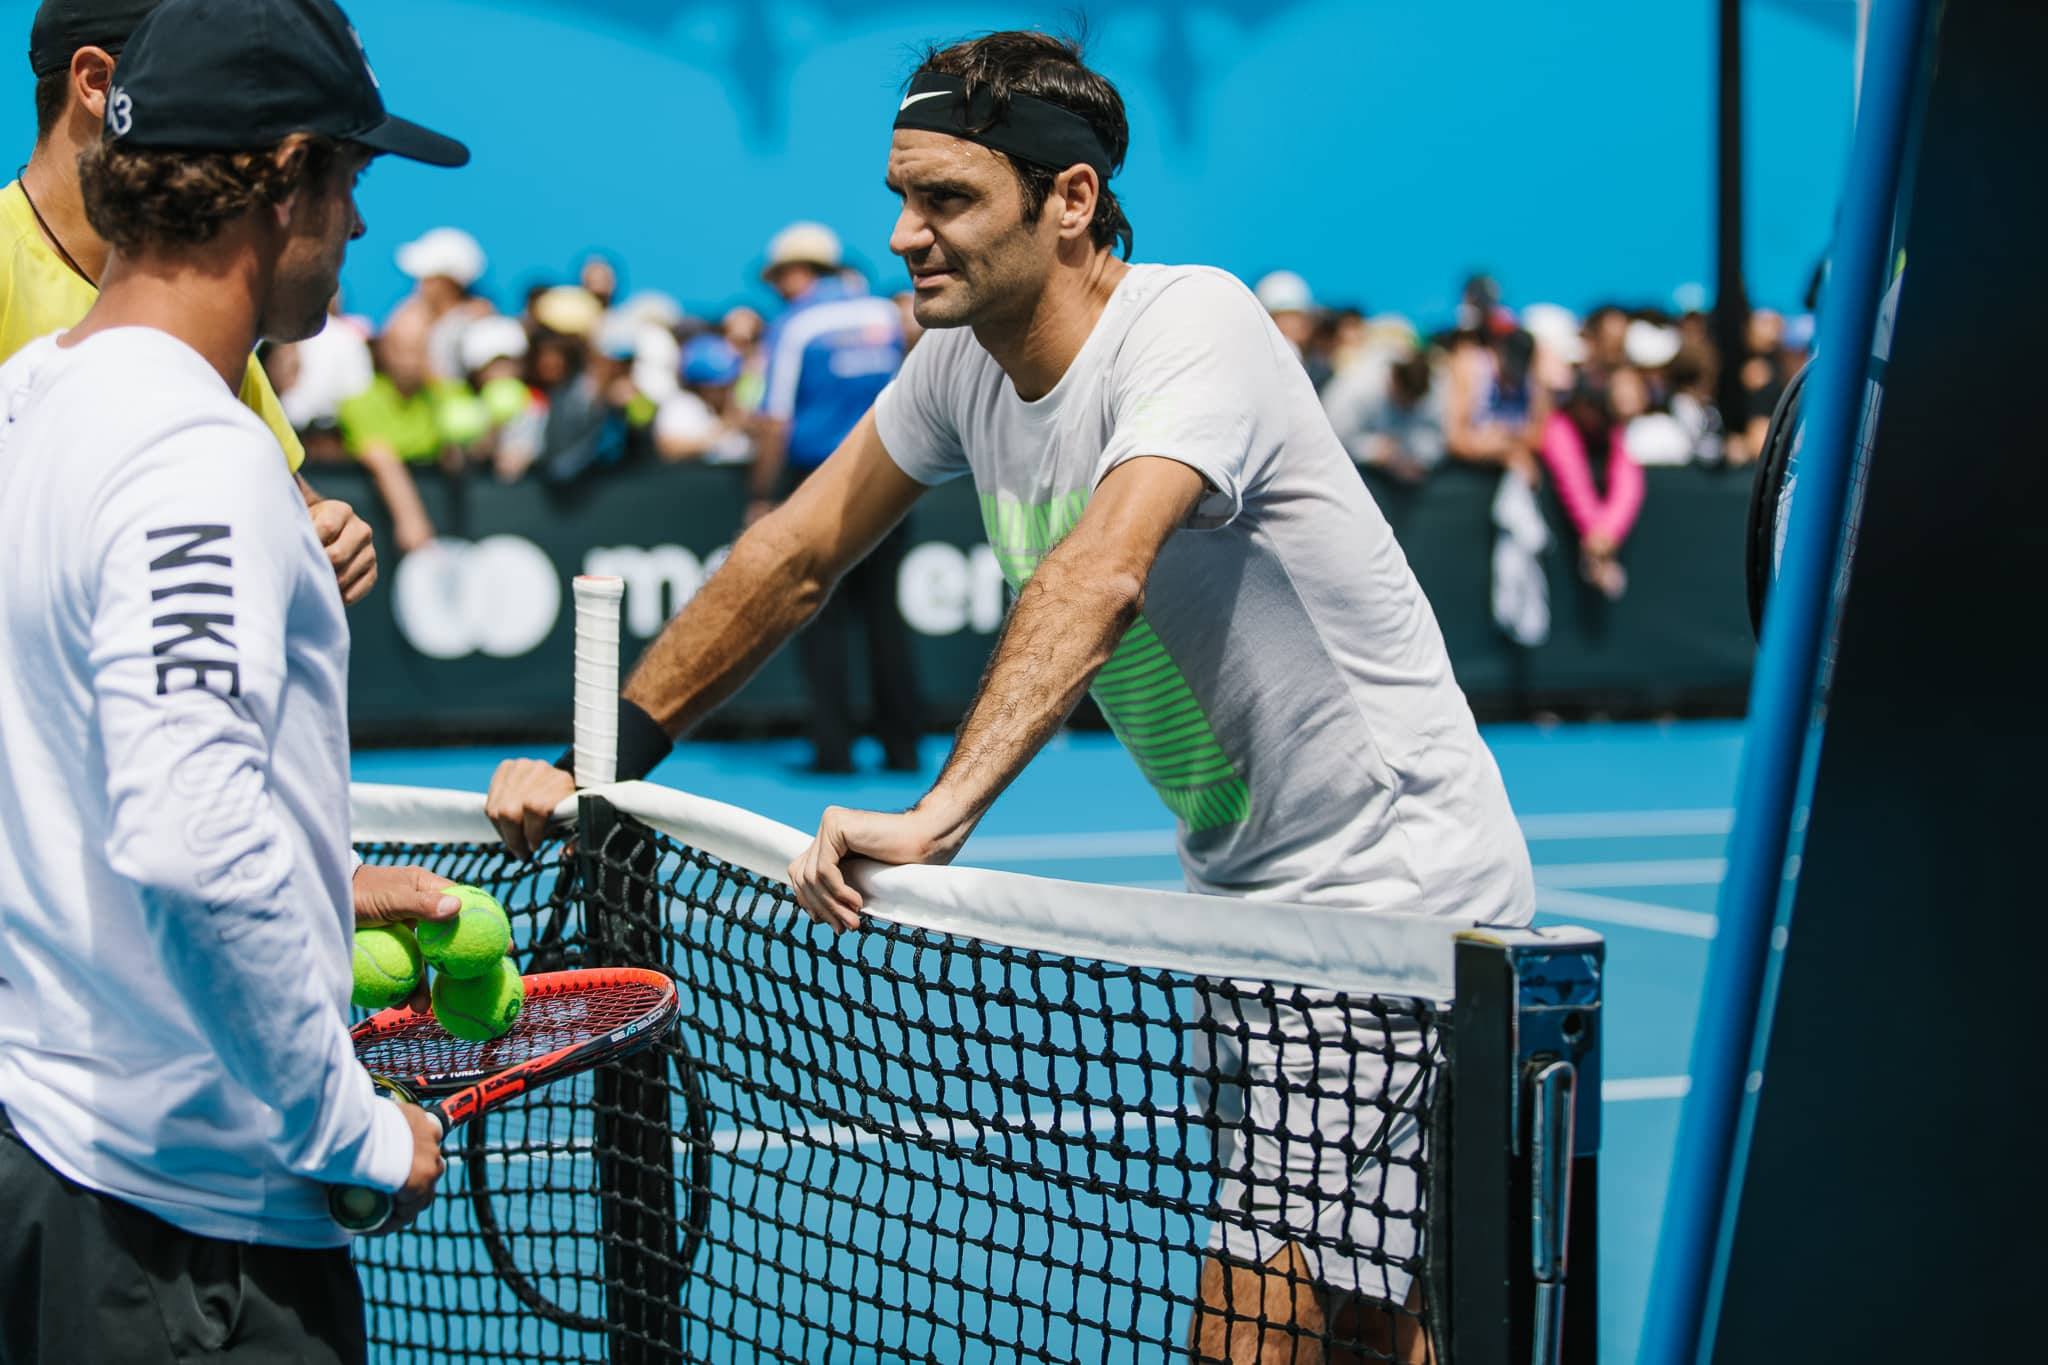 Roger Federer at the Australian open in 2018 - sports event photography